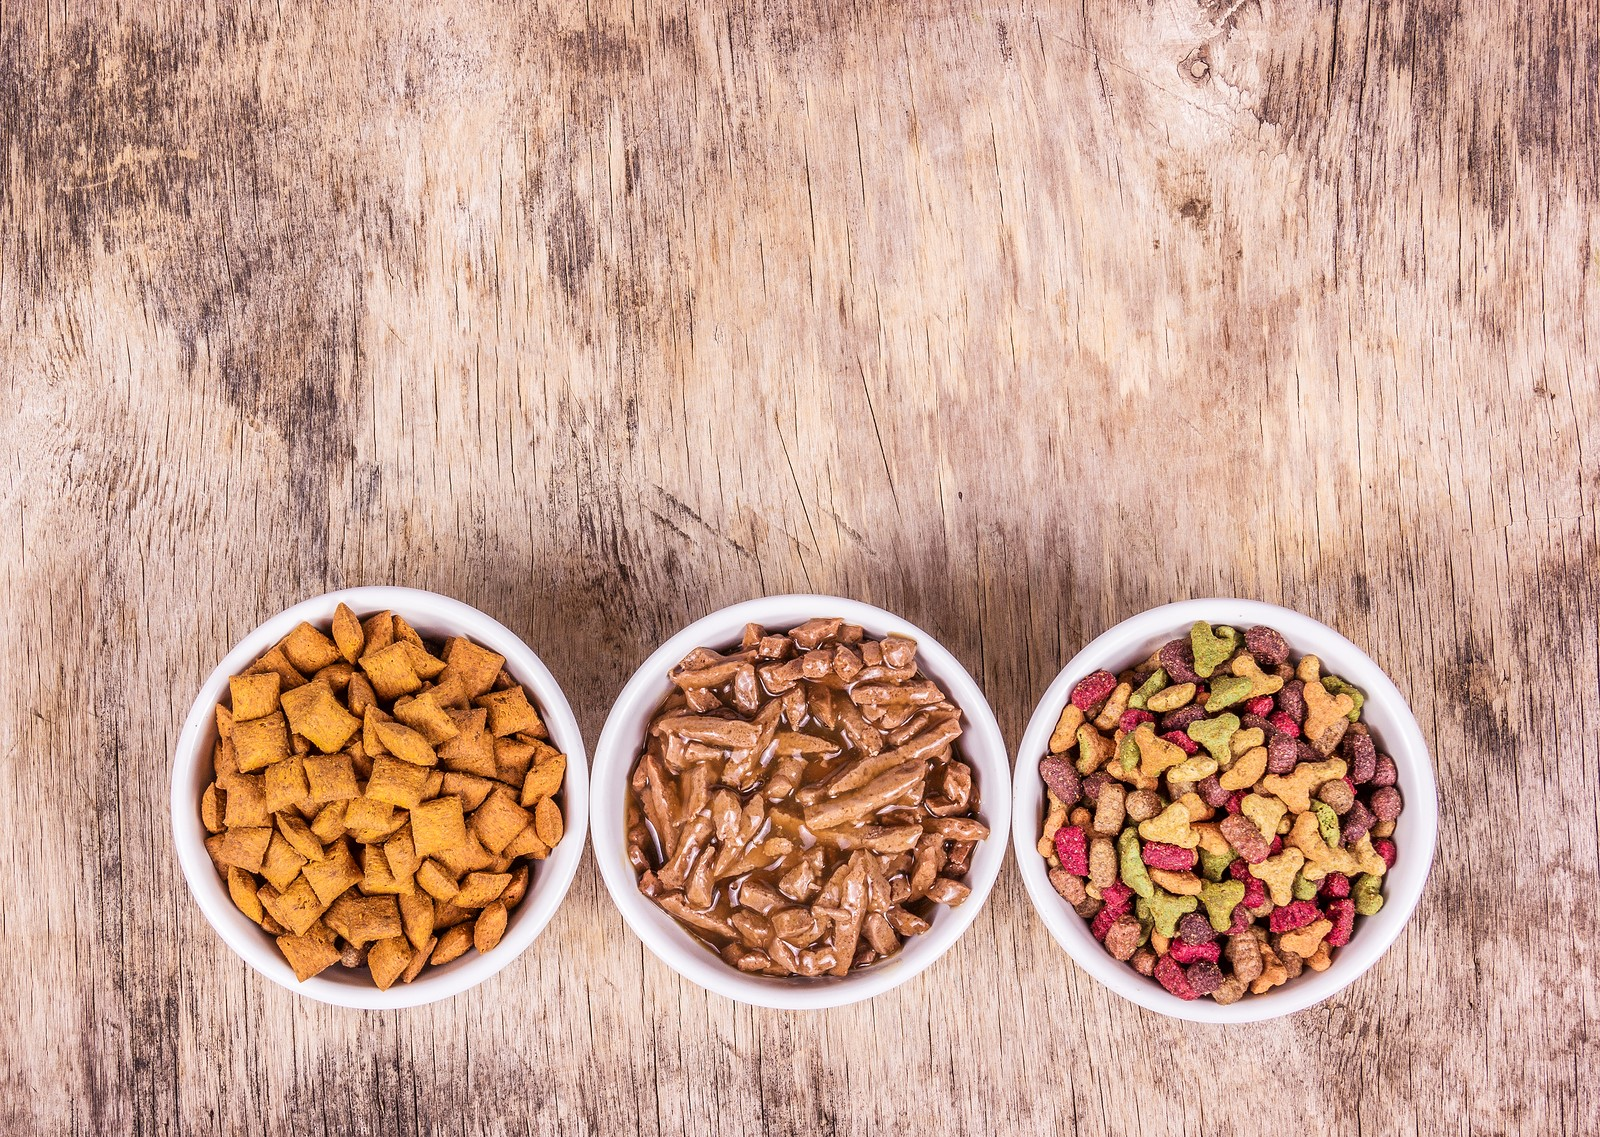 Dry Or Wet Cat Food: Which Is The Better Option?